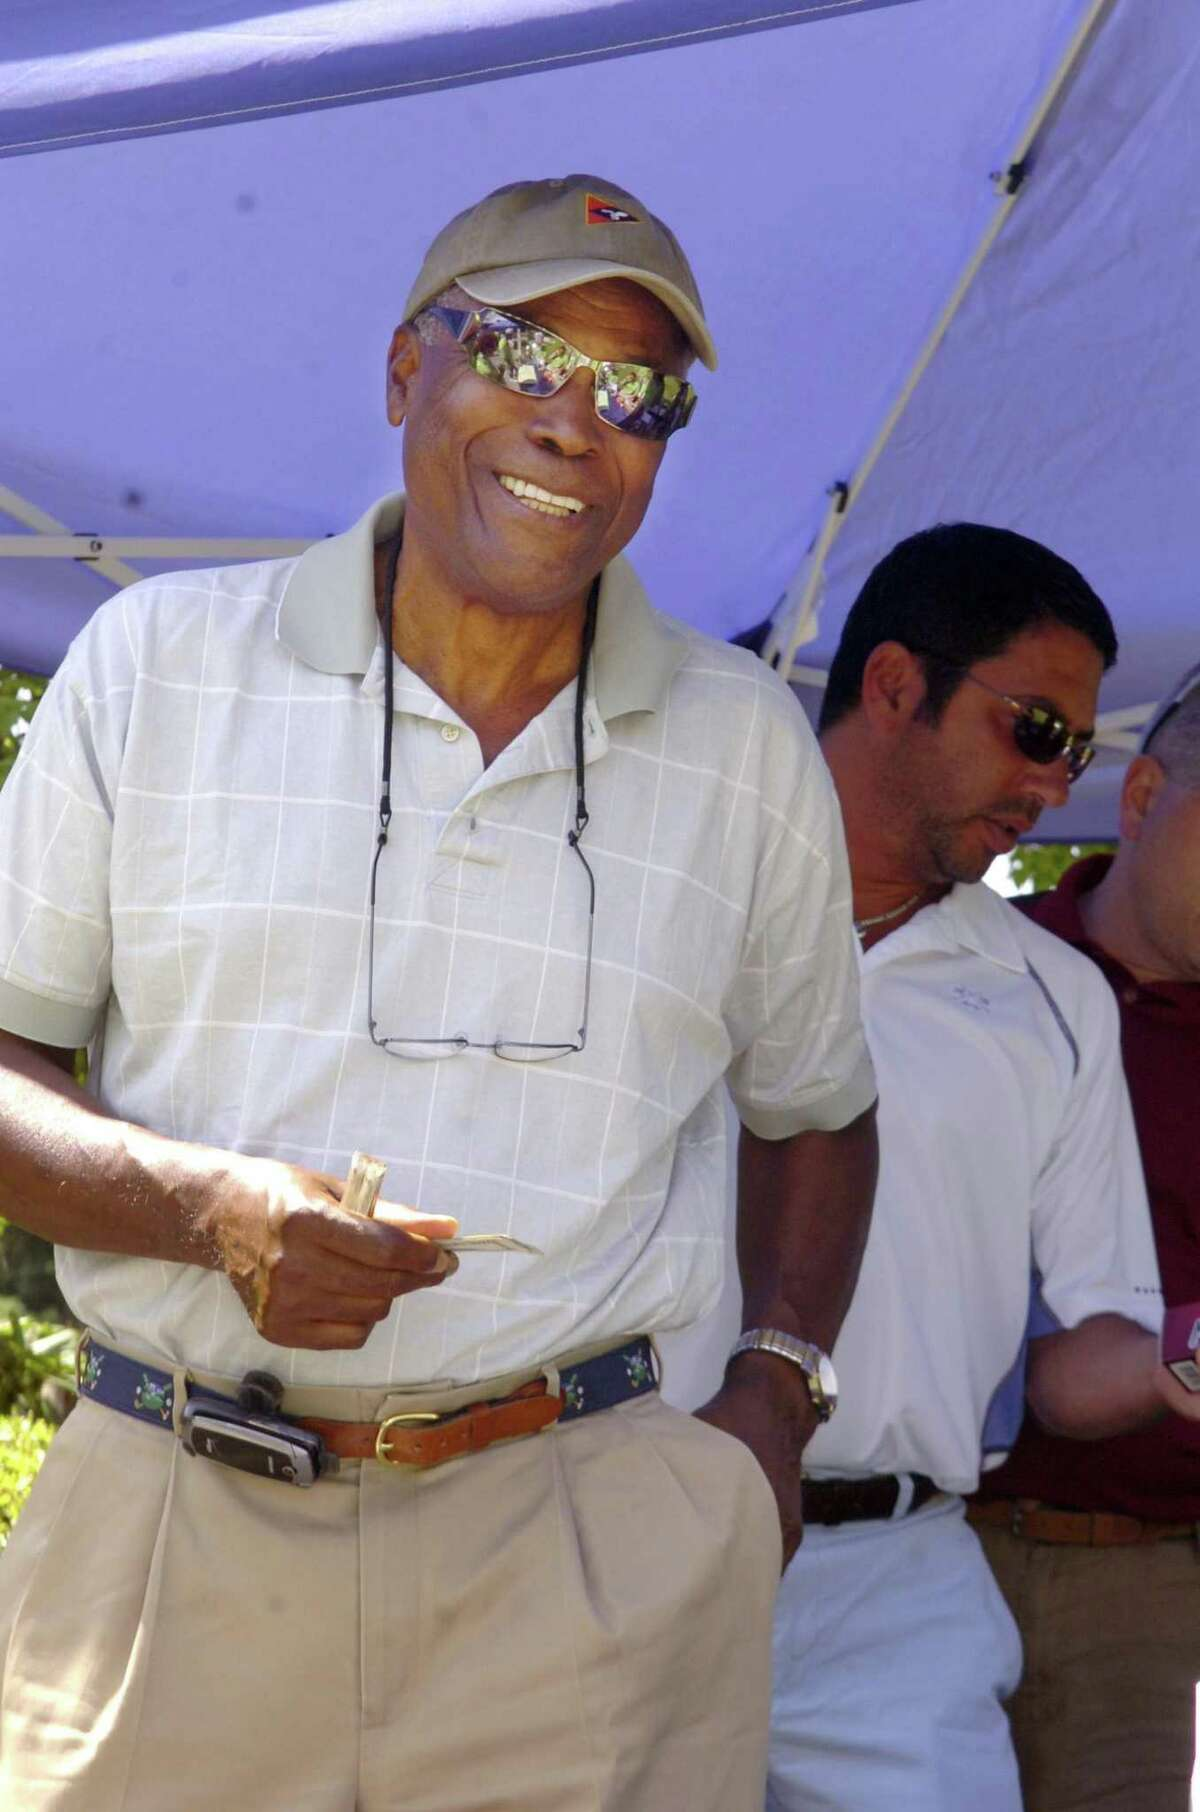 Hall of Famer K.C. Jones at a charity golf event in 2009.